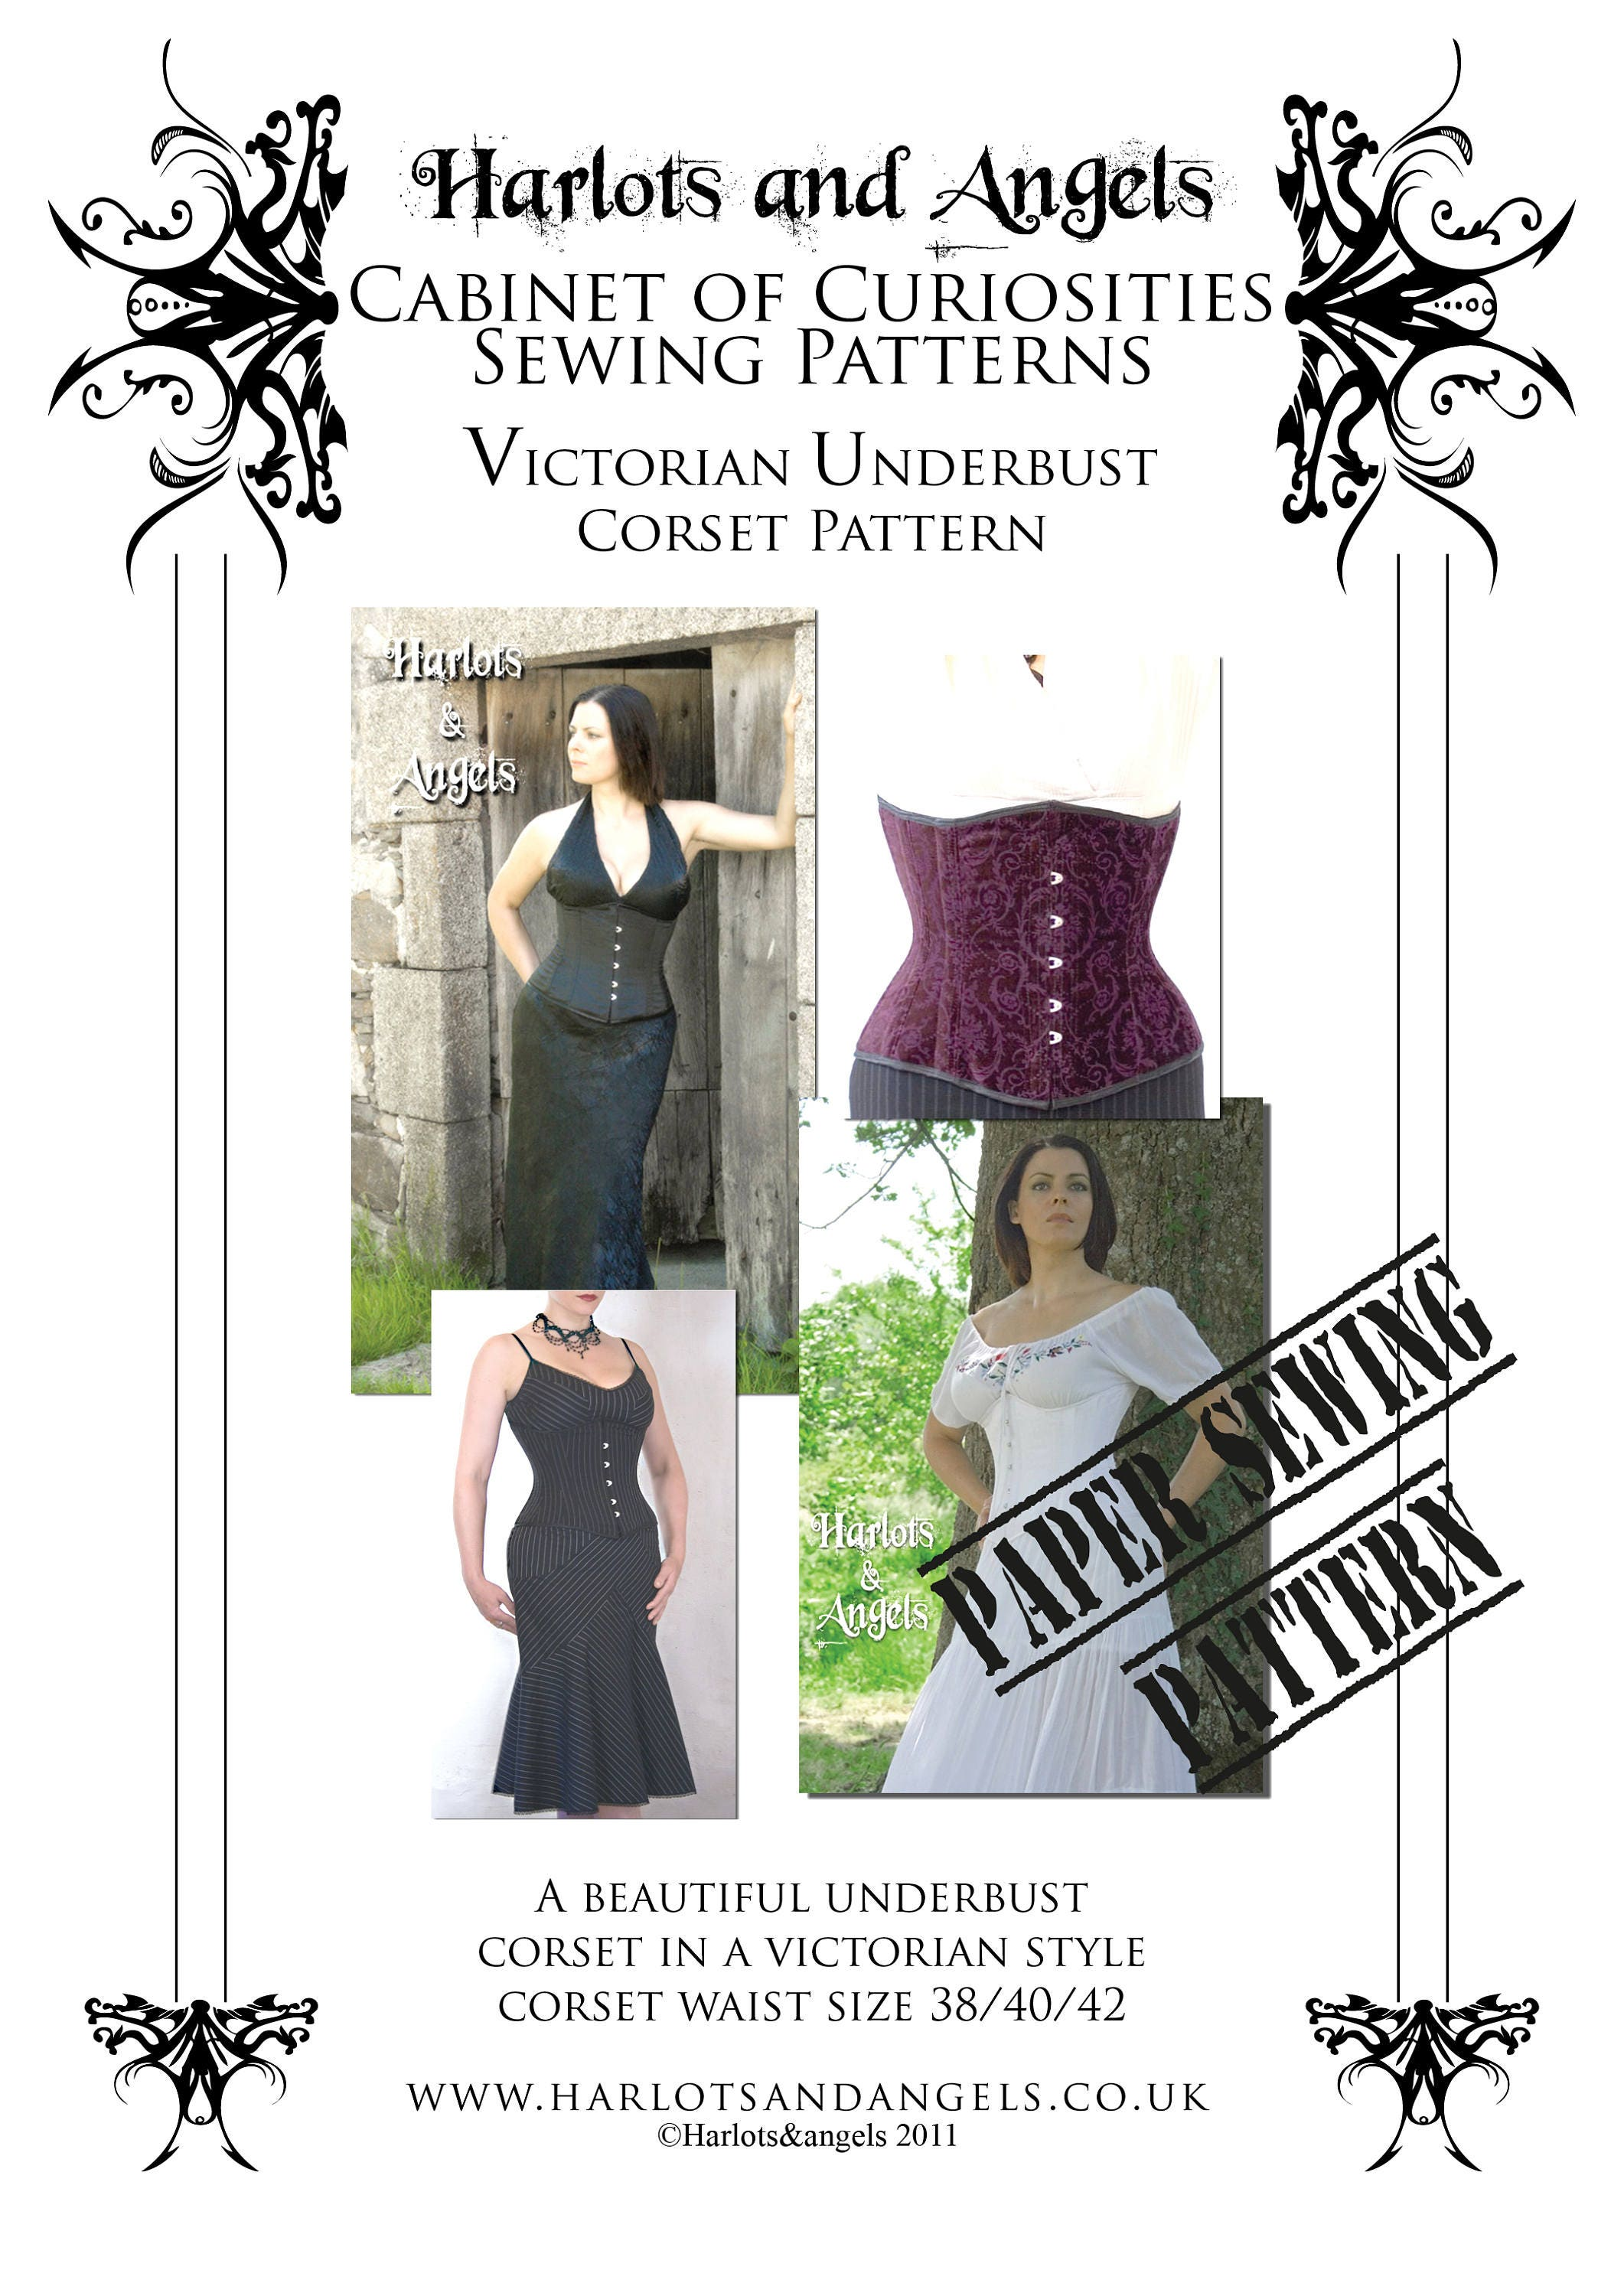 fde5ee62449 Victorian Under bust Corset paper Sewing Pattern Extra Large Great fit  Tight lacing. from Harlotsandangels on Etsy Studio